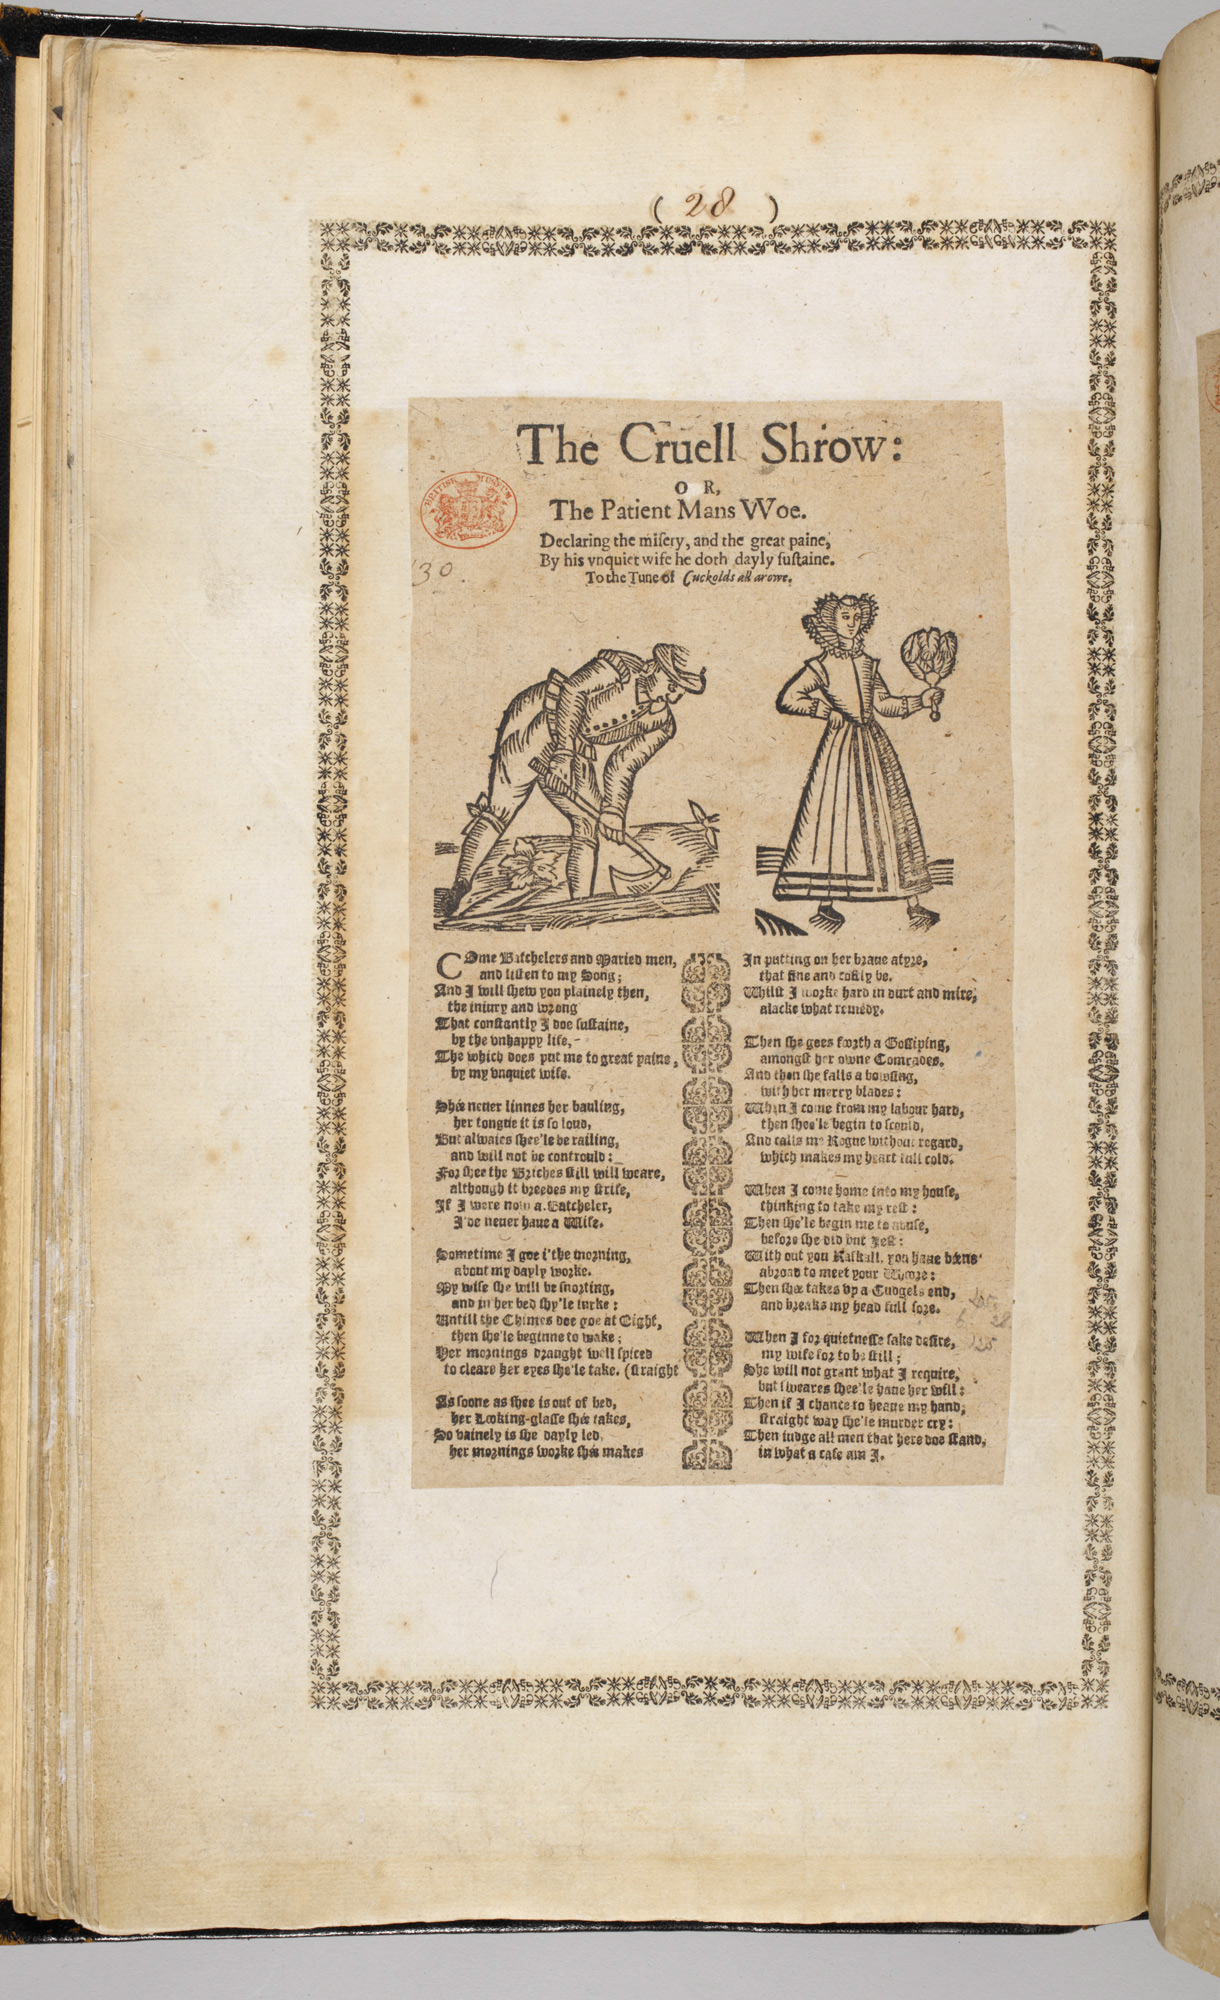 Broadside ballad on the Cruel Shrew